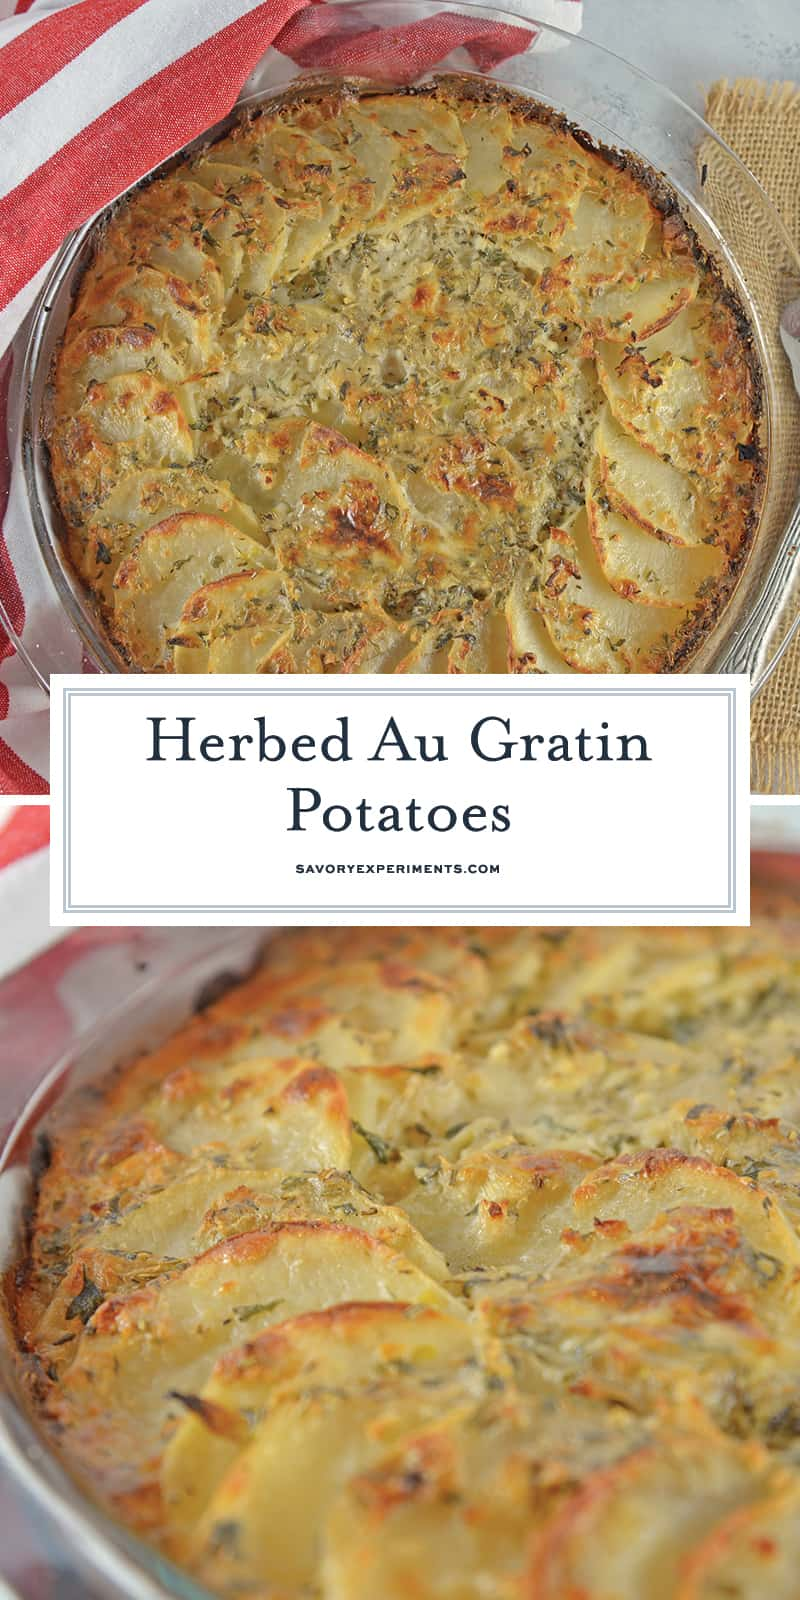 Herbed Au Gratin Potatoes makes the perfect side dish made with layers of thinly cut potatoes, Swiss cheese, shallots, herbs and cream sauce make this beautiful dish delicious as well. #augratinpotatoesrecipe #potatosidedishrecipes www.savoryexperiments.com